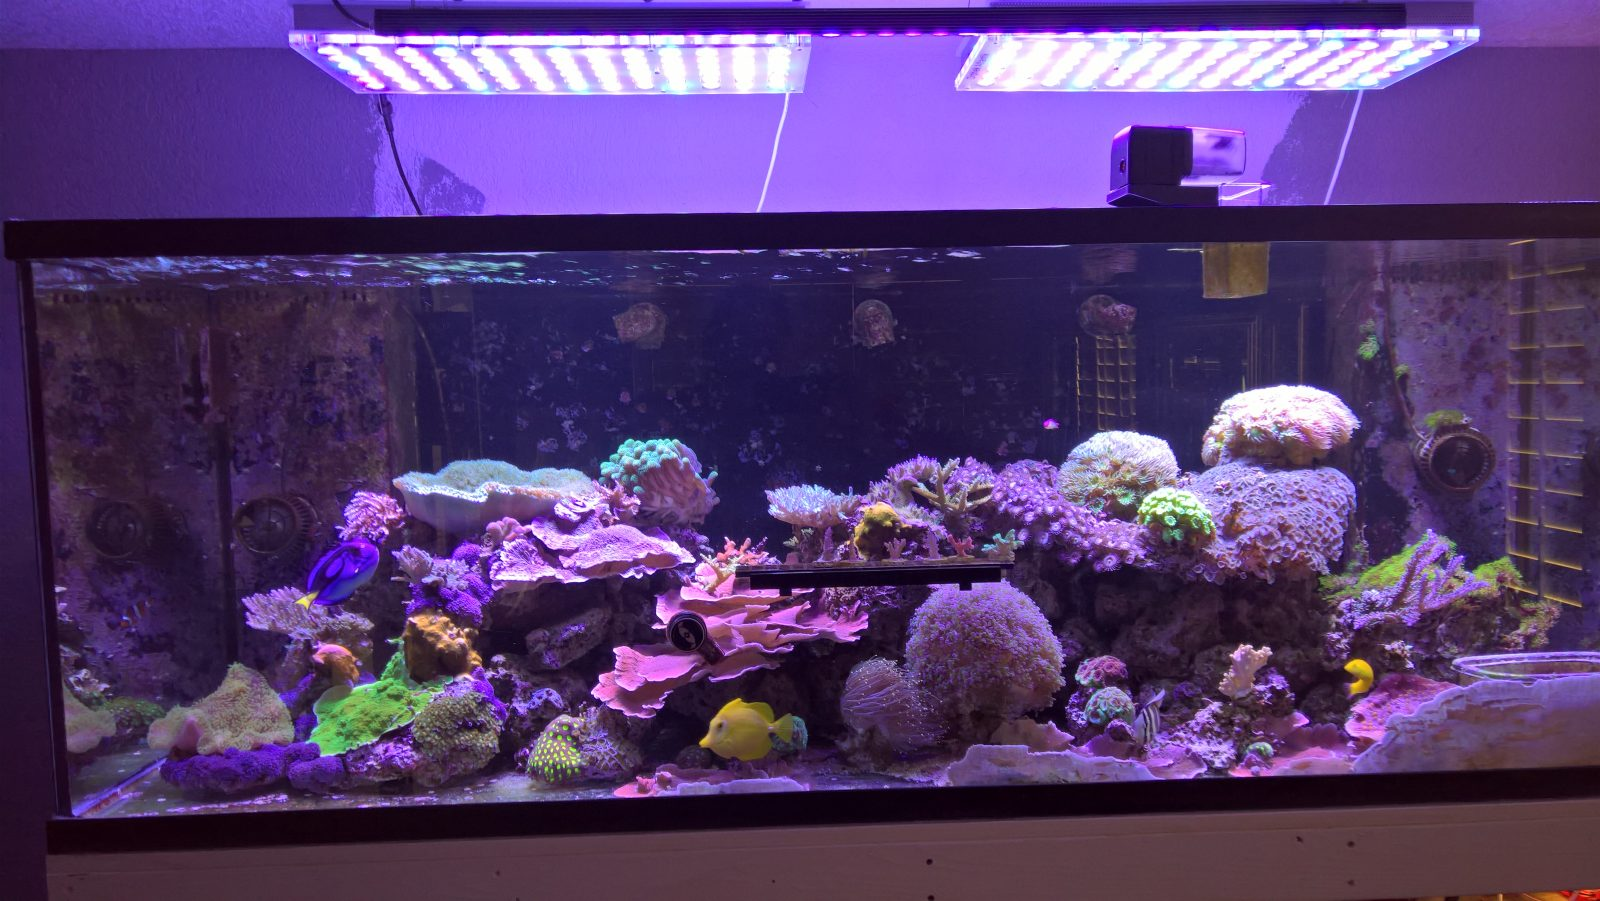 USA reef tank dengan bar 108 Watt OR 120 LED baru kami